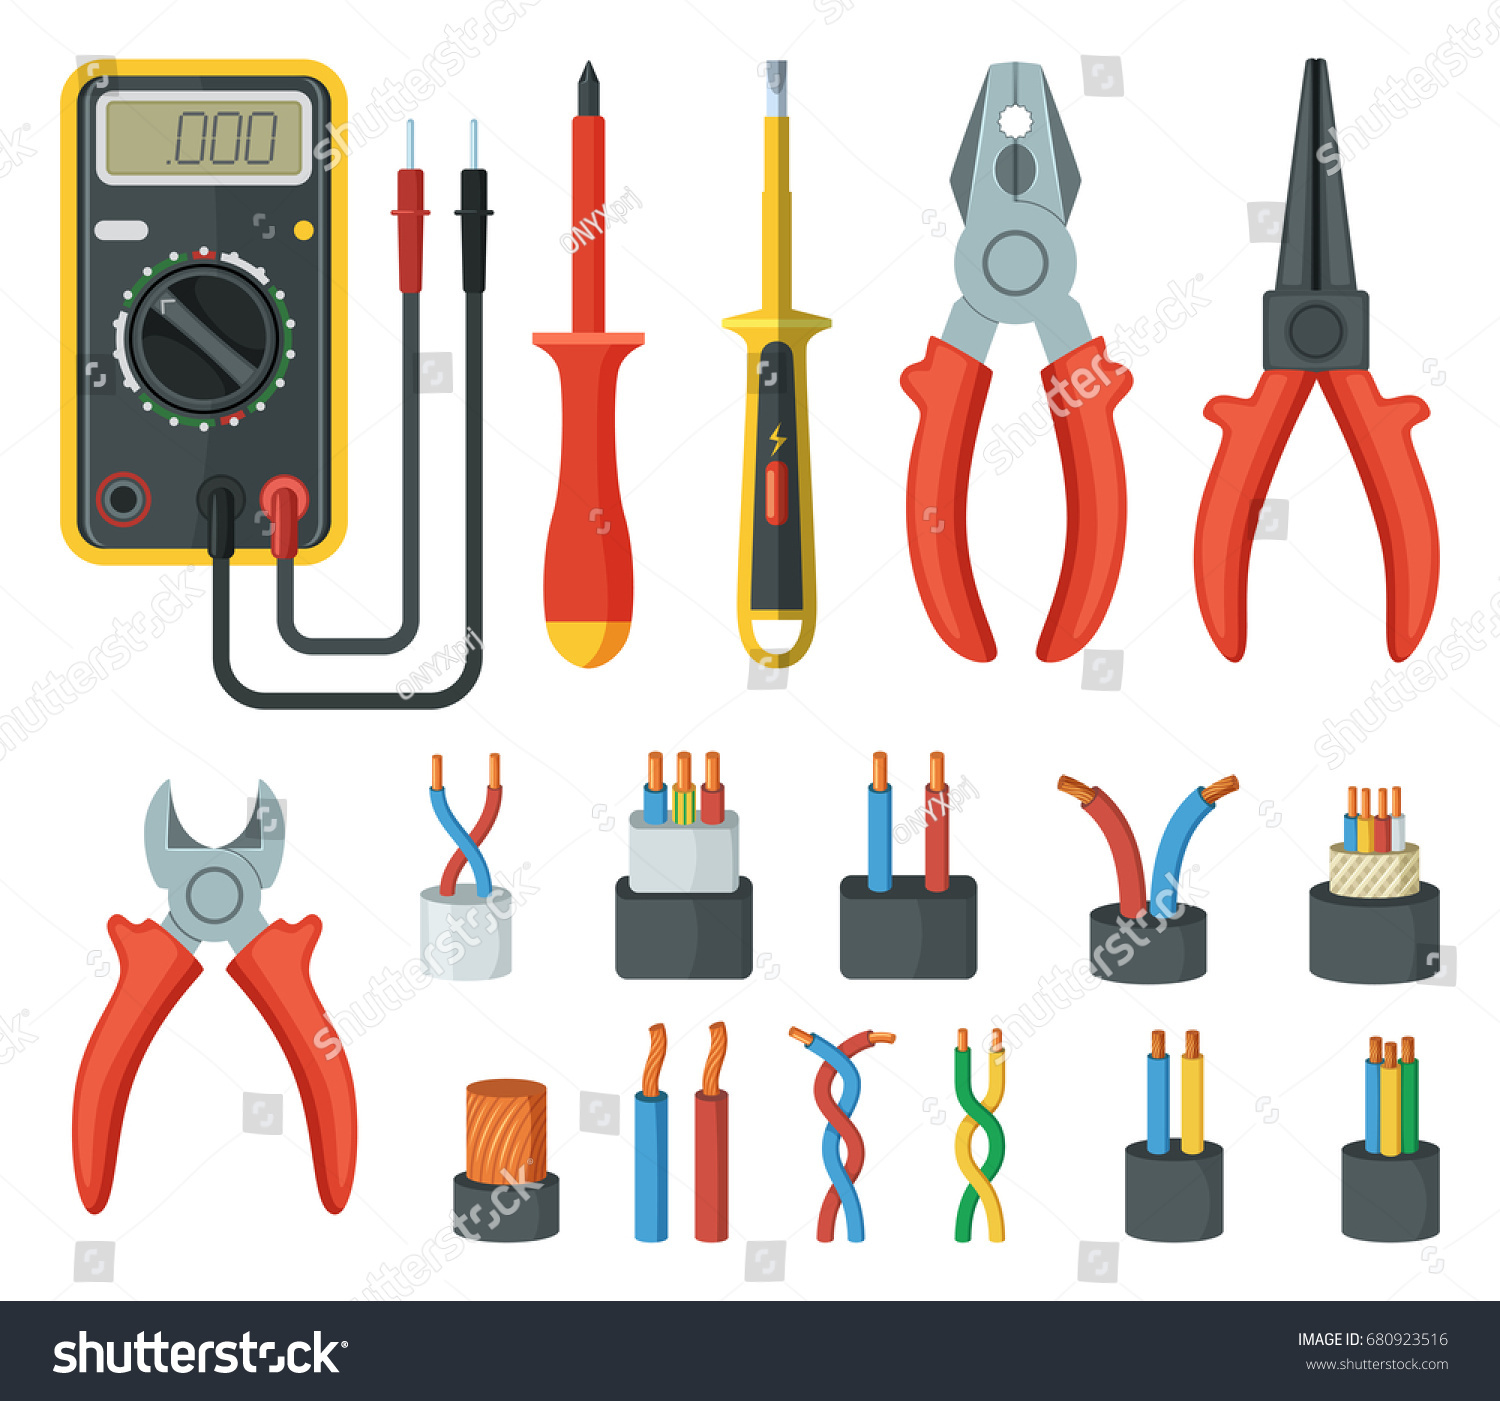 Electronics Cables And Wires : Electrical cable wires different electronic tools stock